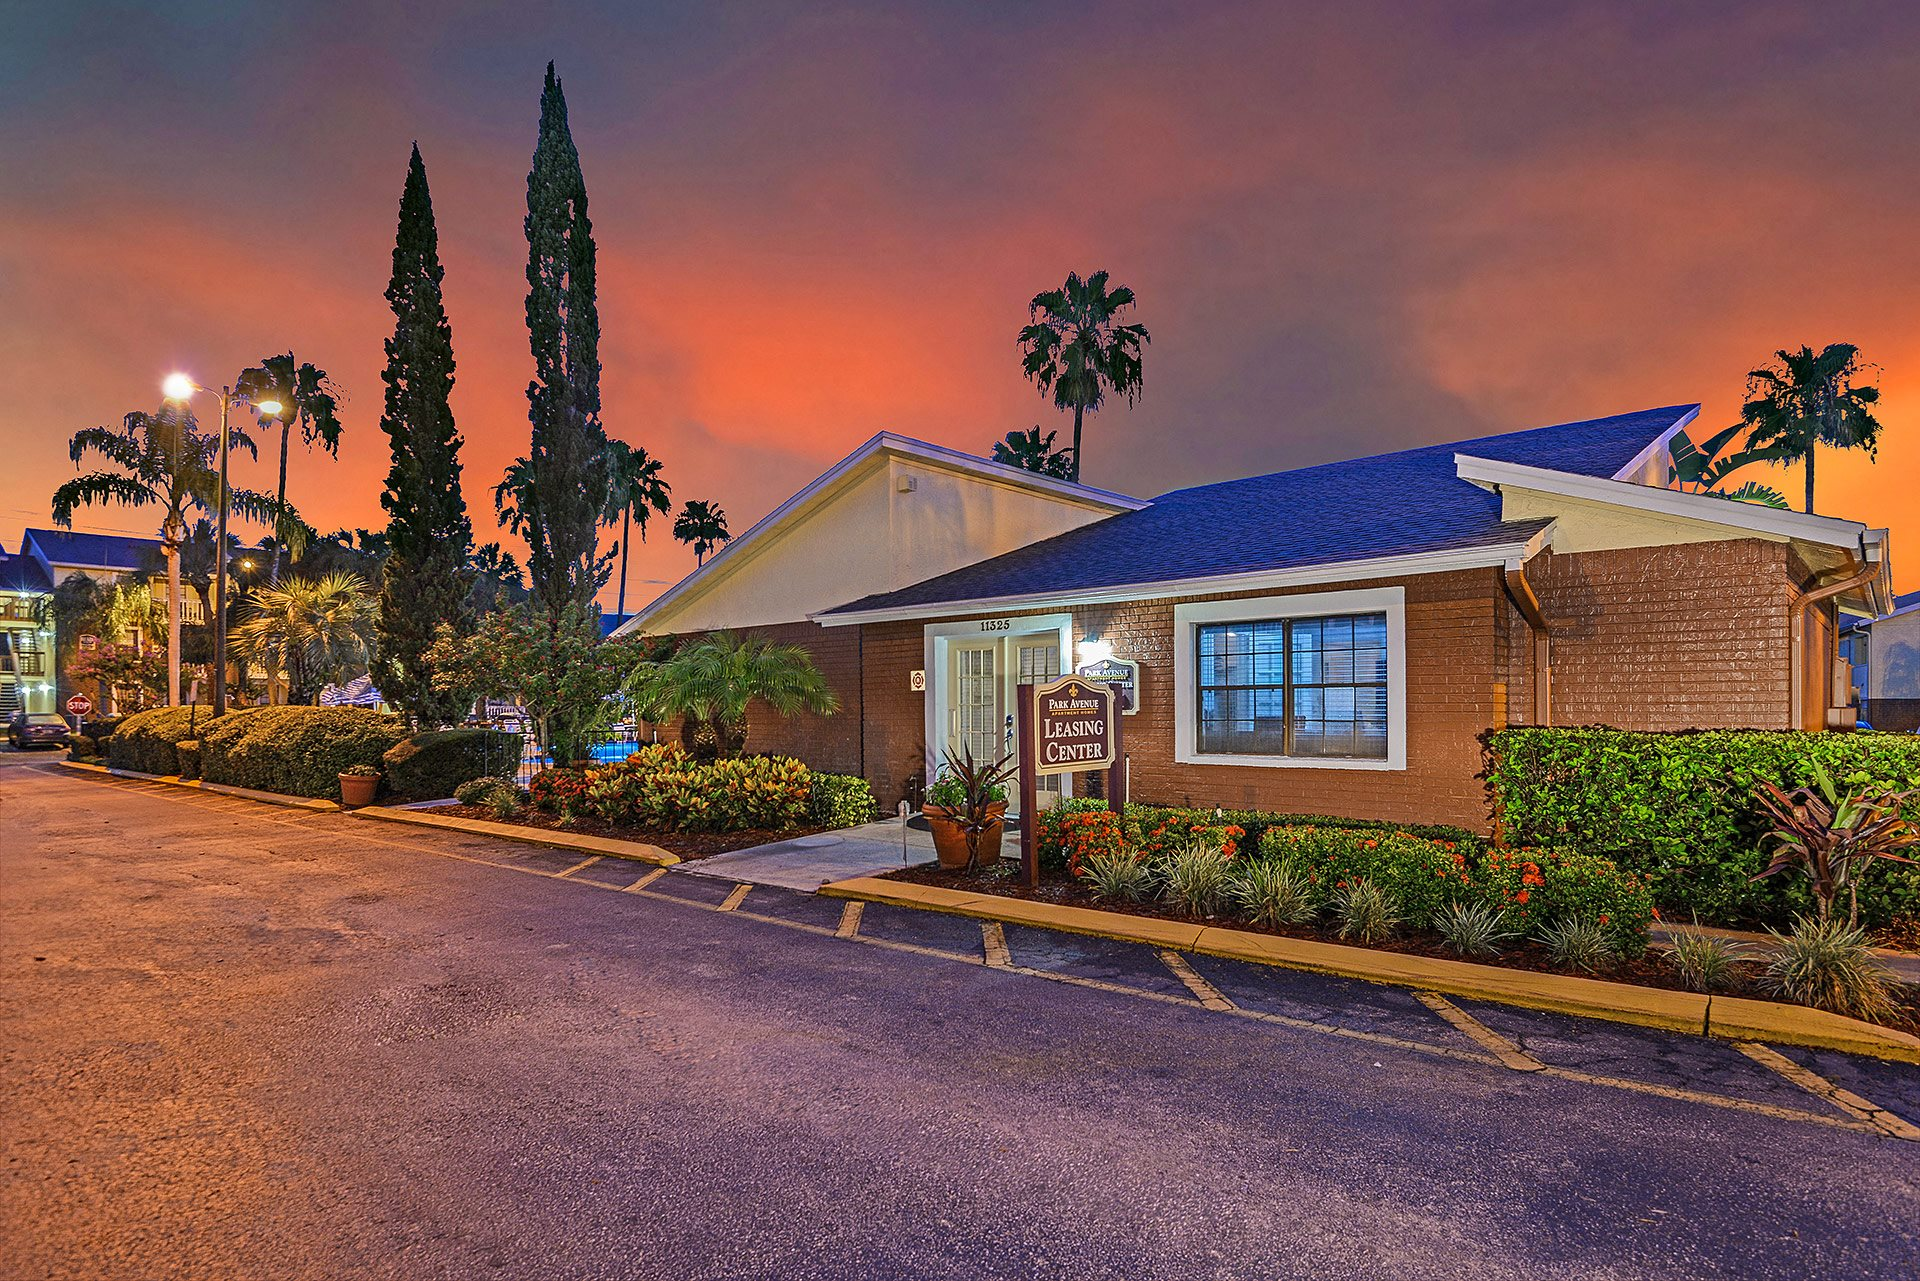 Park Avenue Apartments Tampa Florida Clubhouse with Glowing Orange Sunset in Background